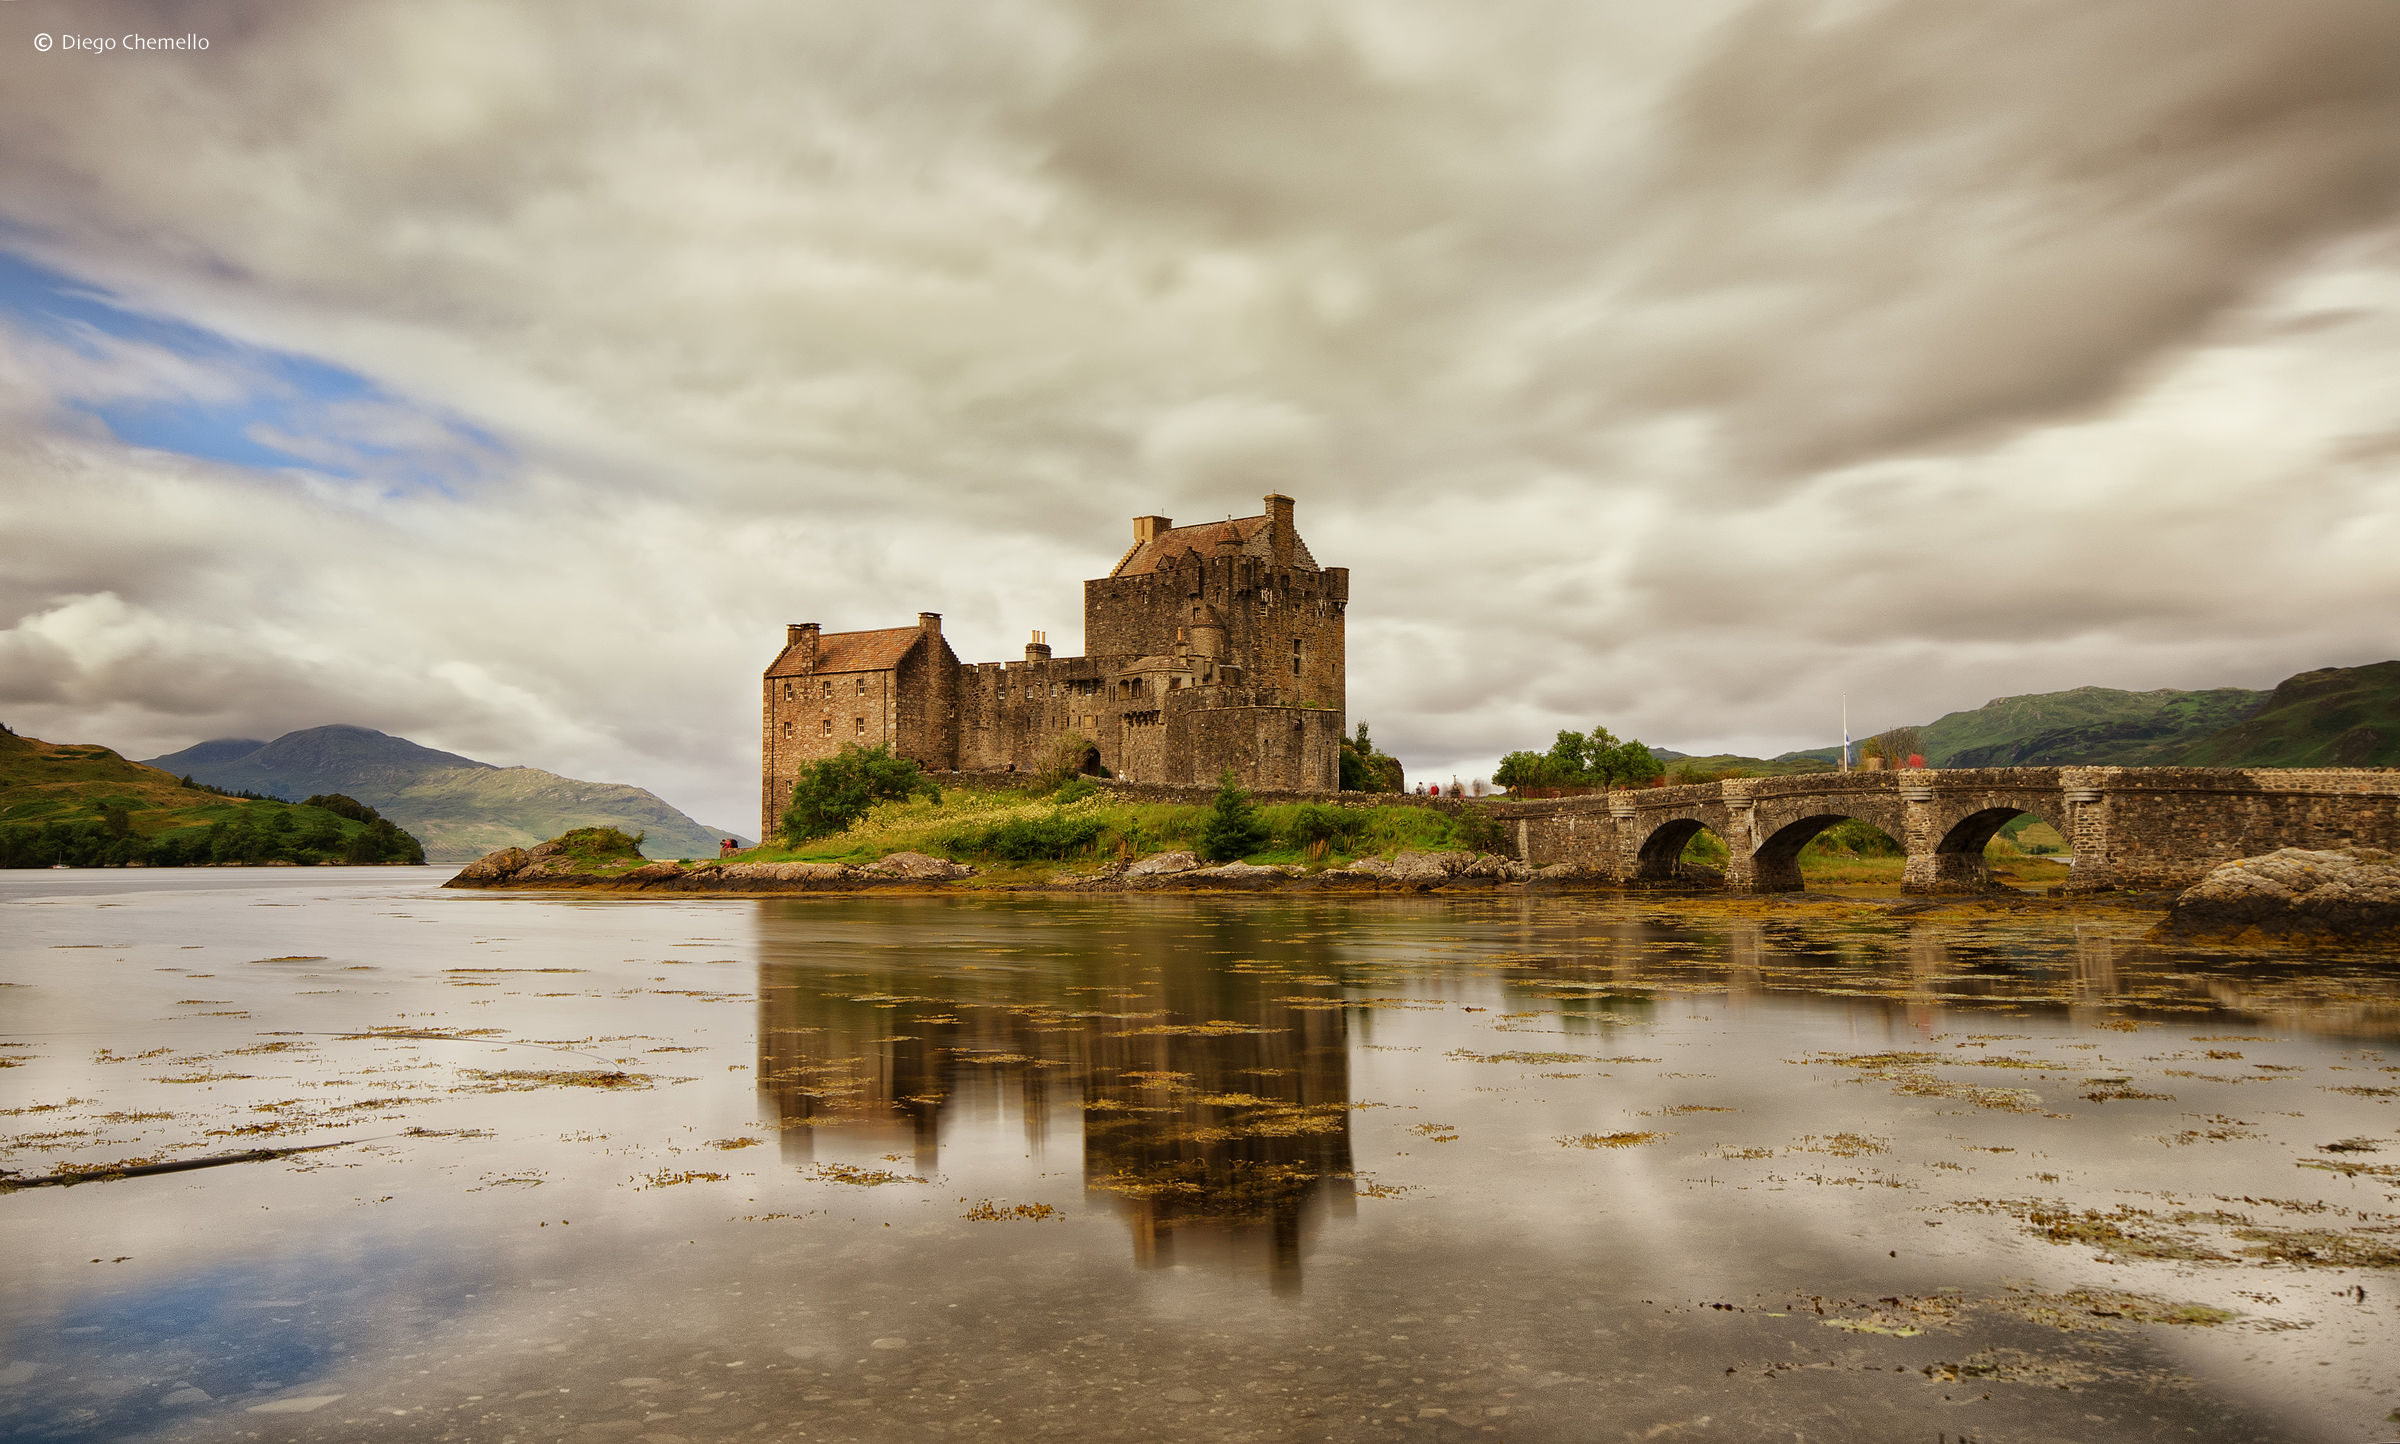 Reflections on the lake of Eilean Donan Castle...